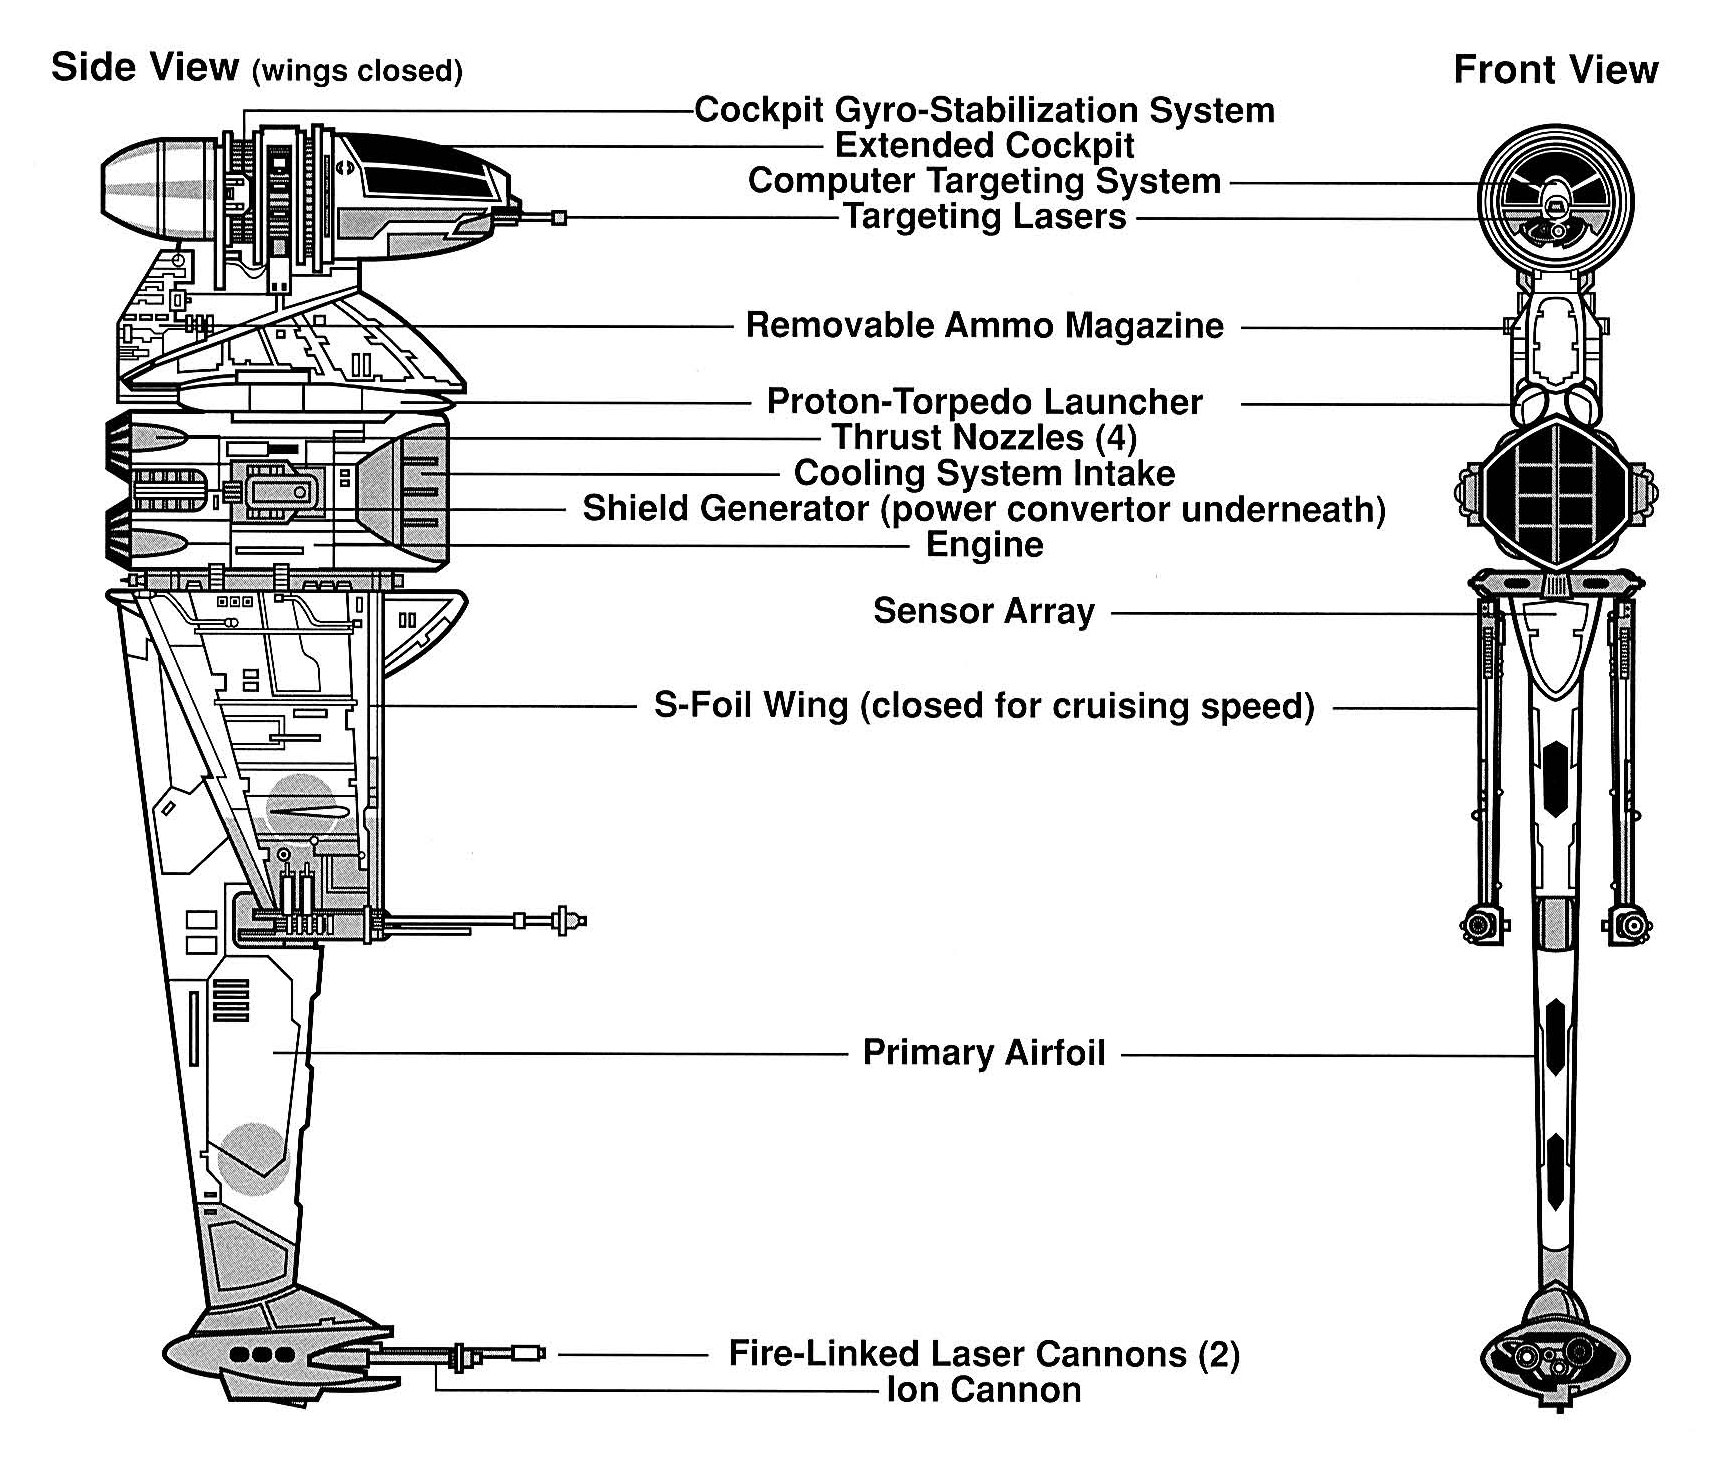 B-wing/E starfighter | Wookieepedia | FANDOM powered by Wikia